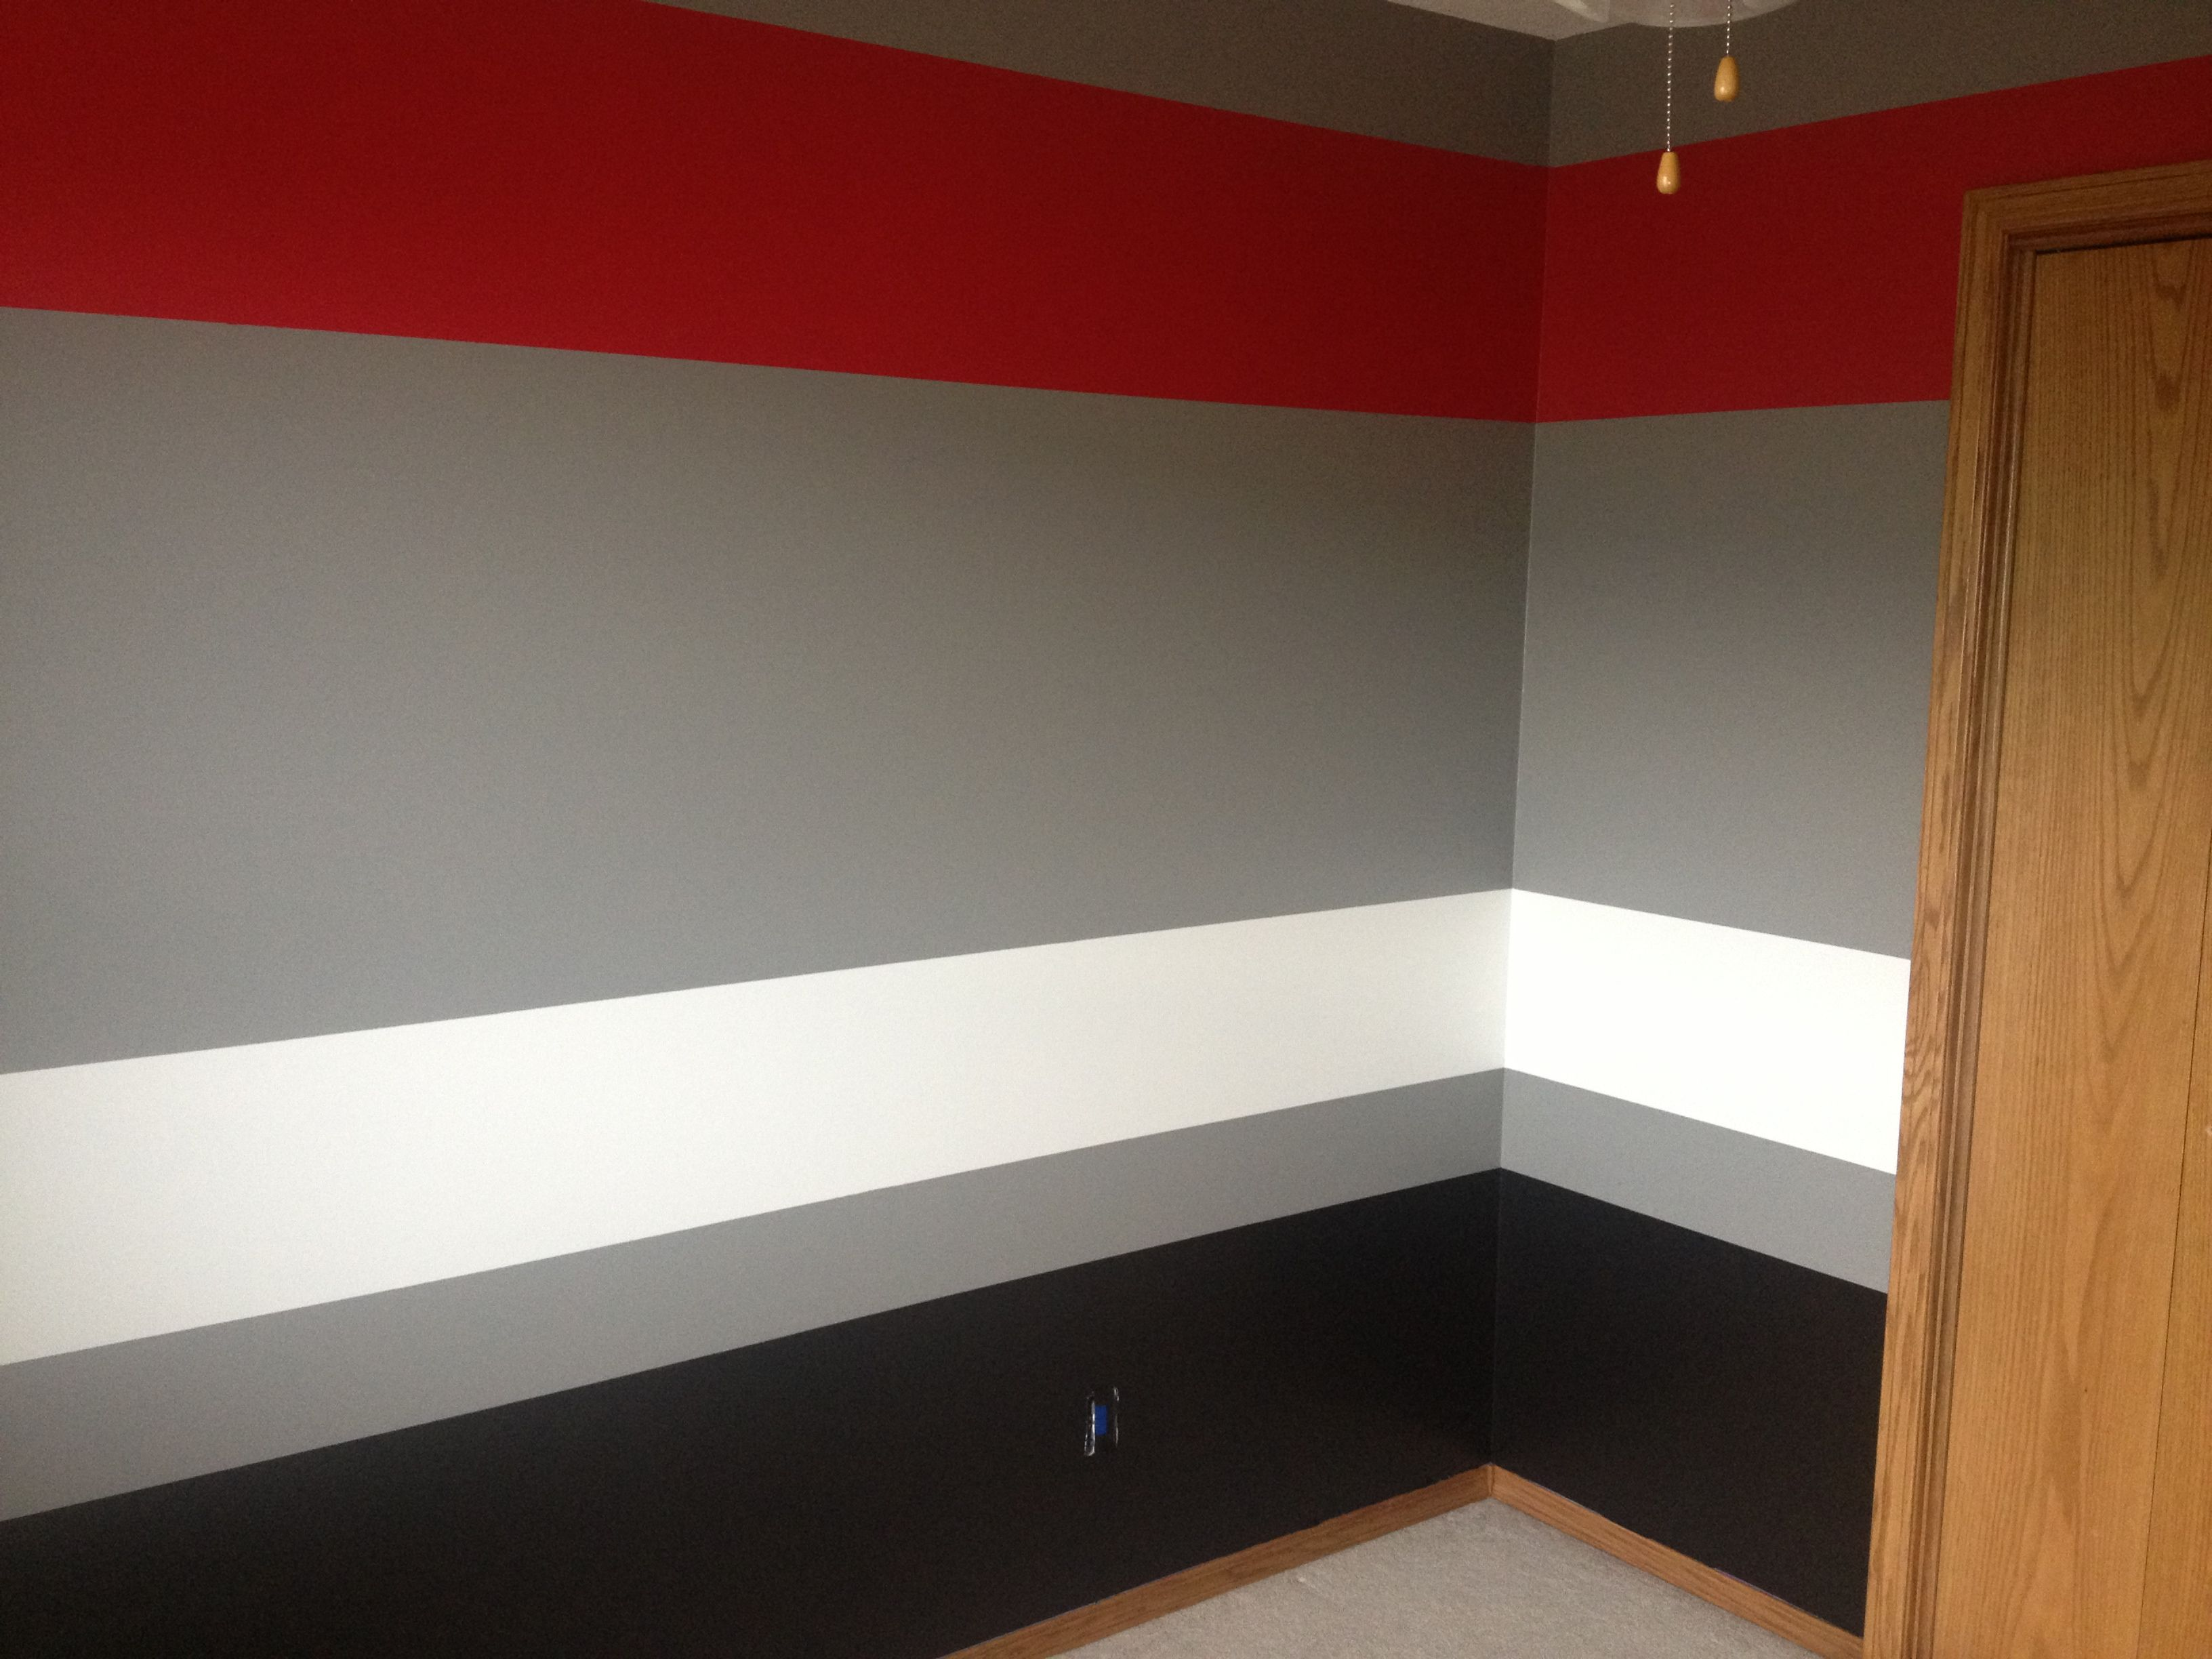 Painted Room Grey Red White Black Bedroom Paint Design Boys